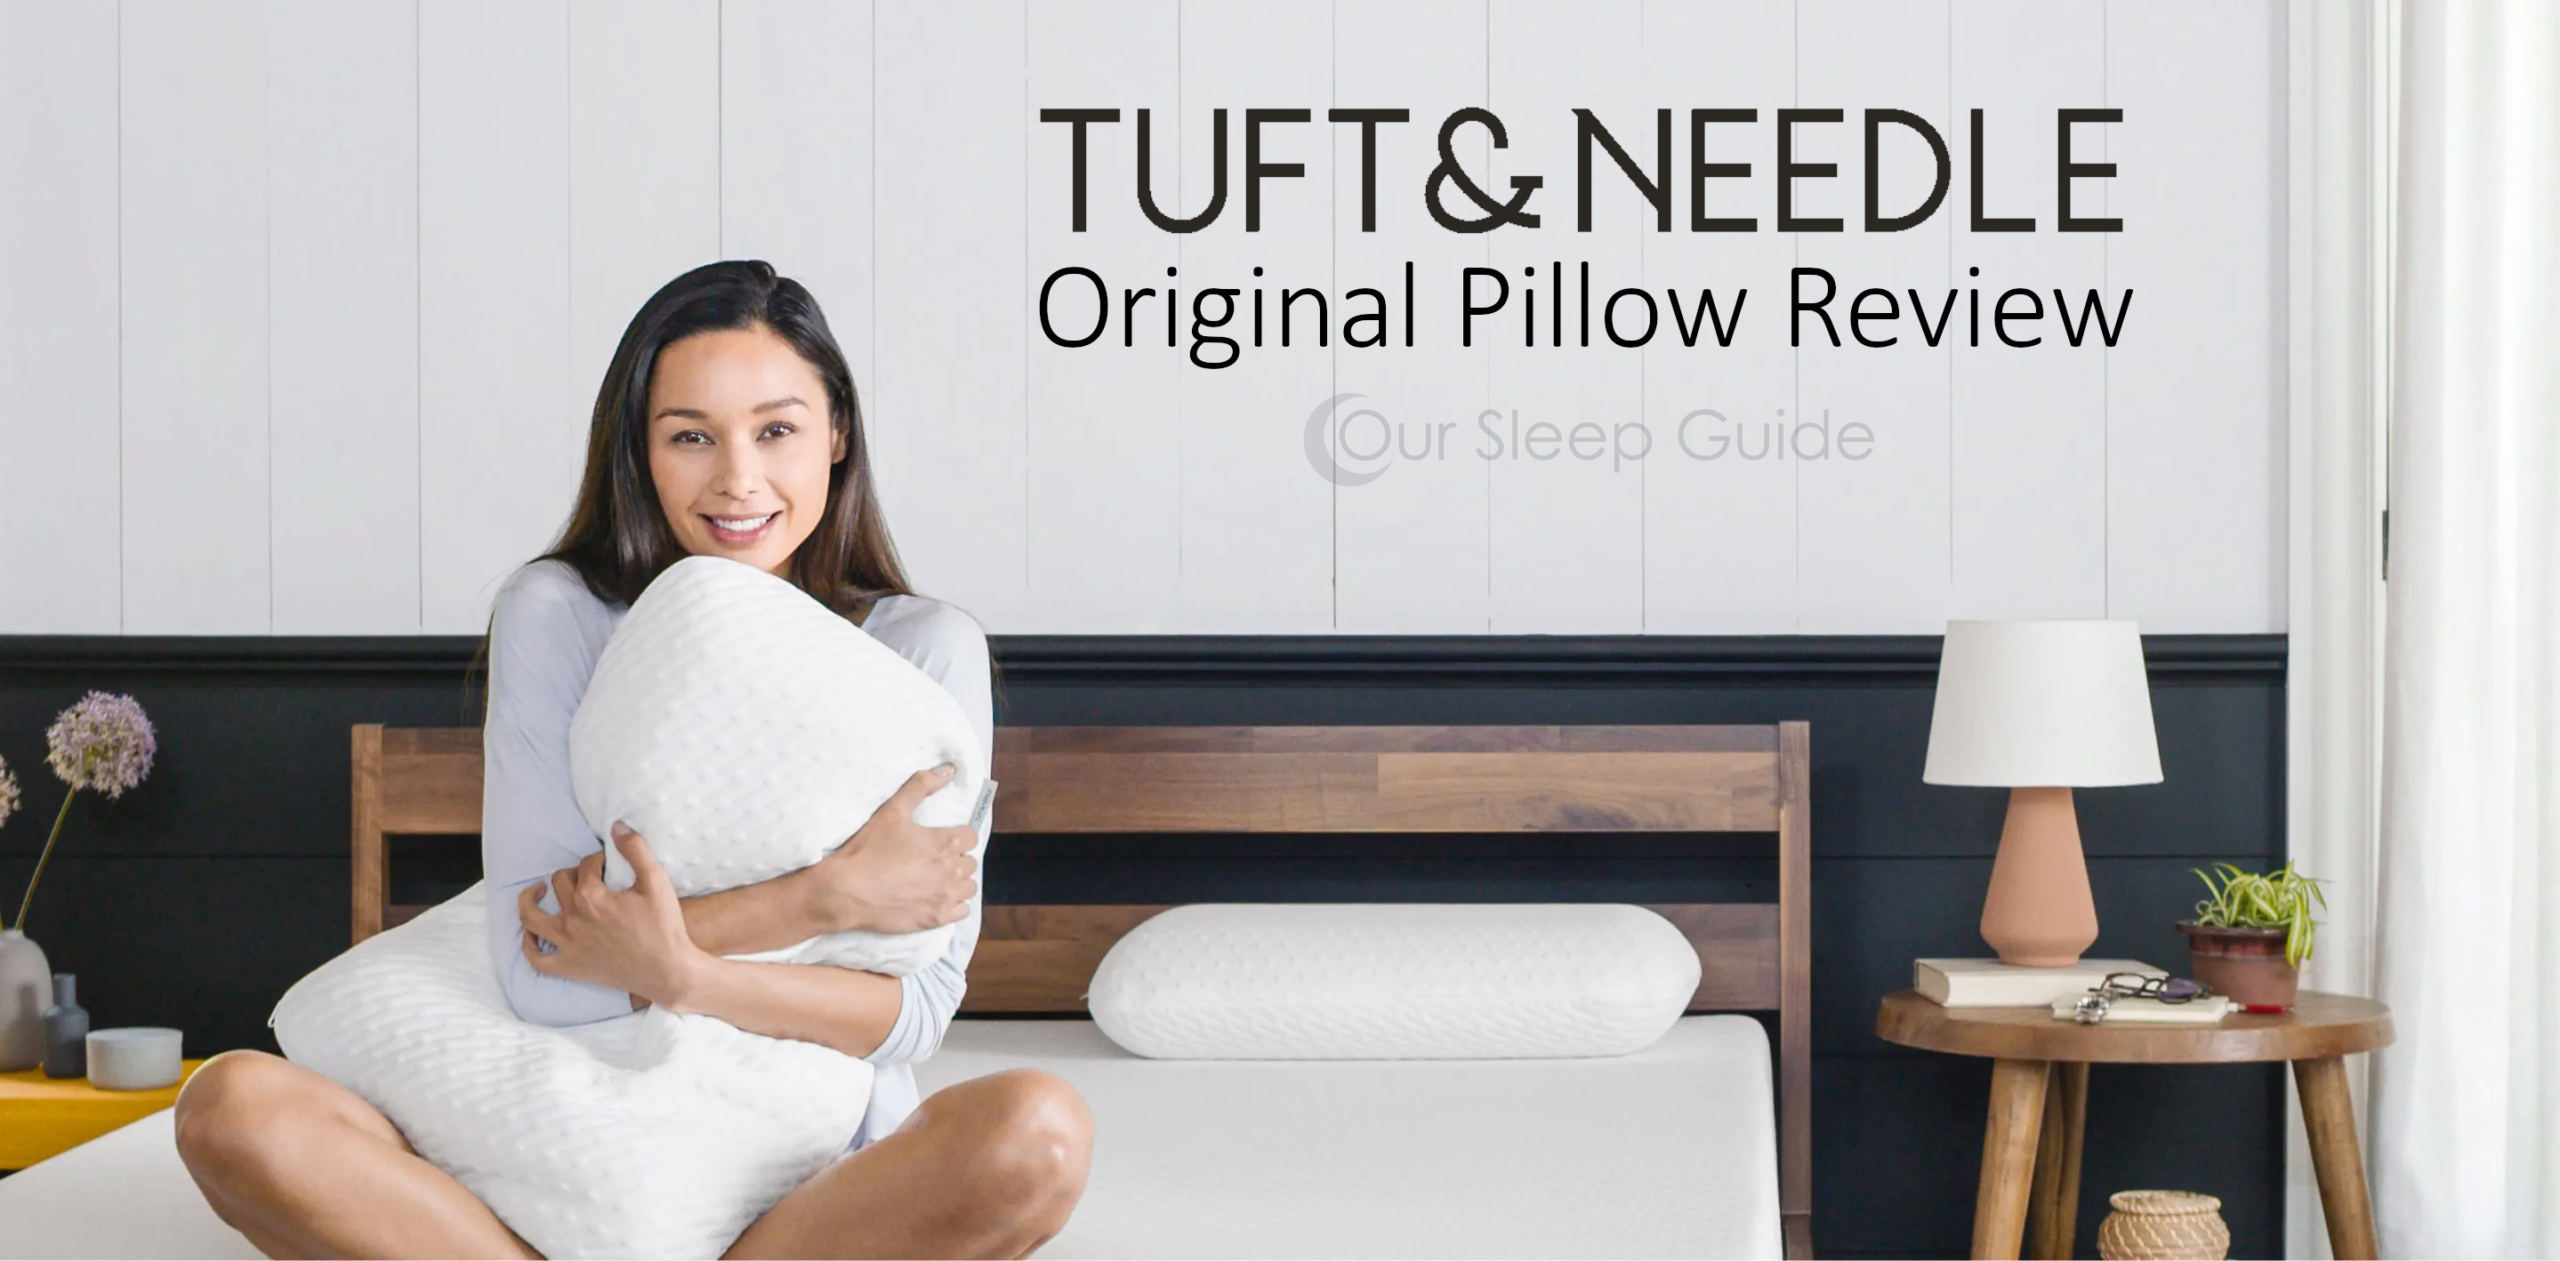 the tuft & needle pillow review by our sleep guide